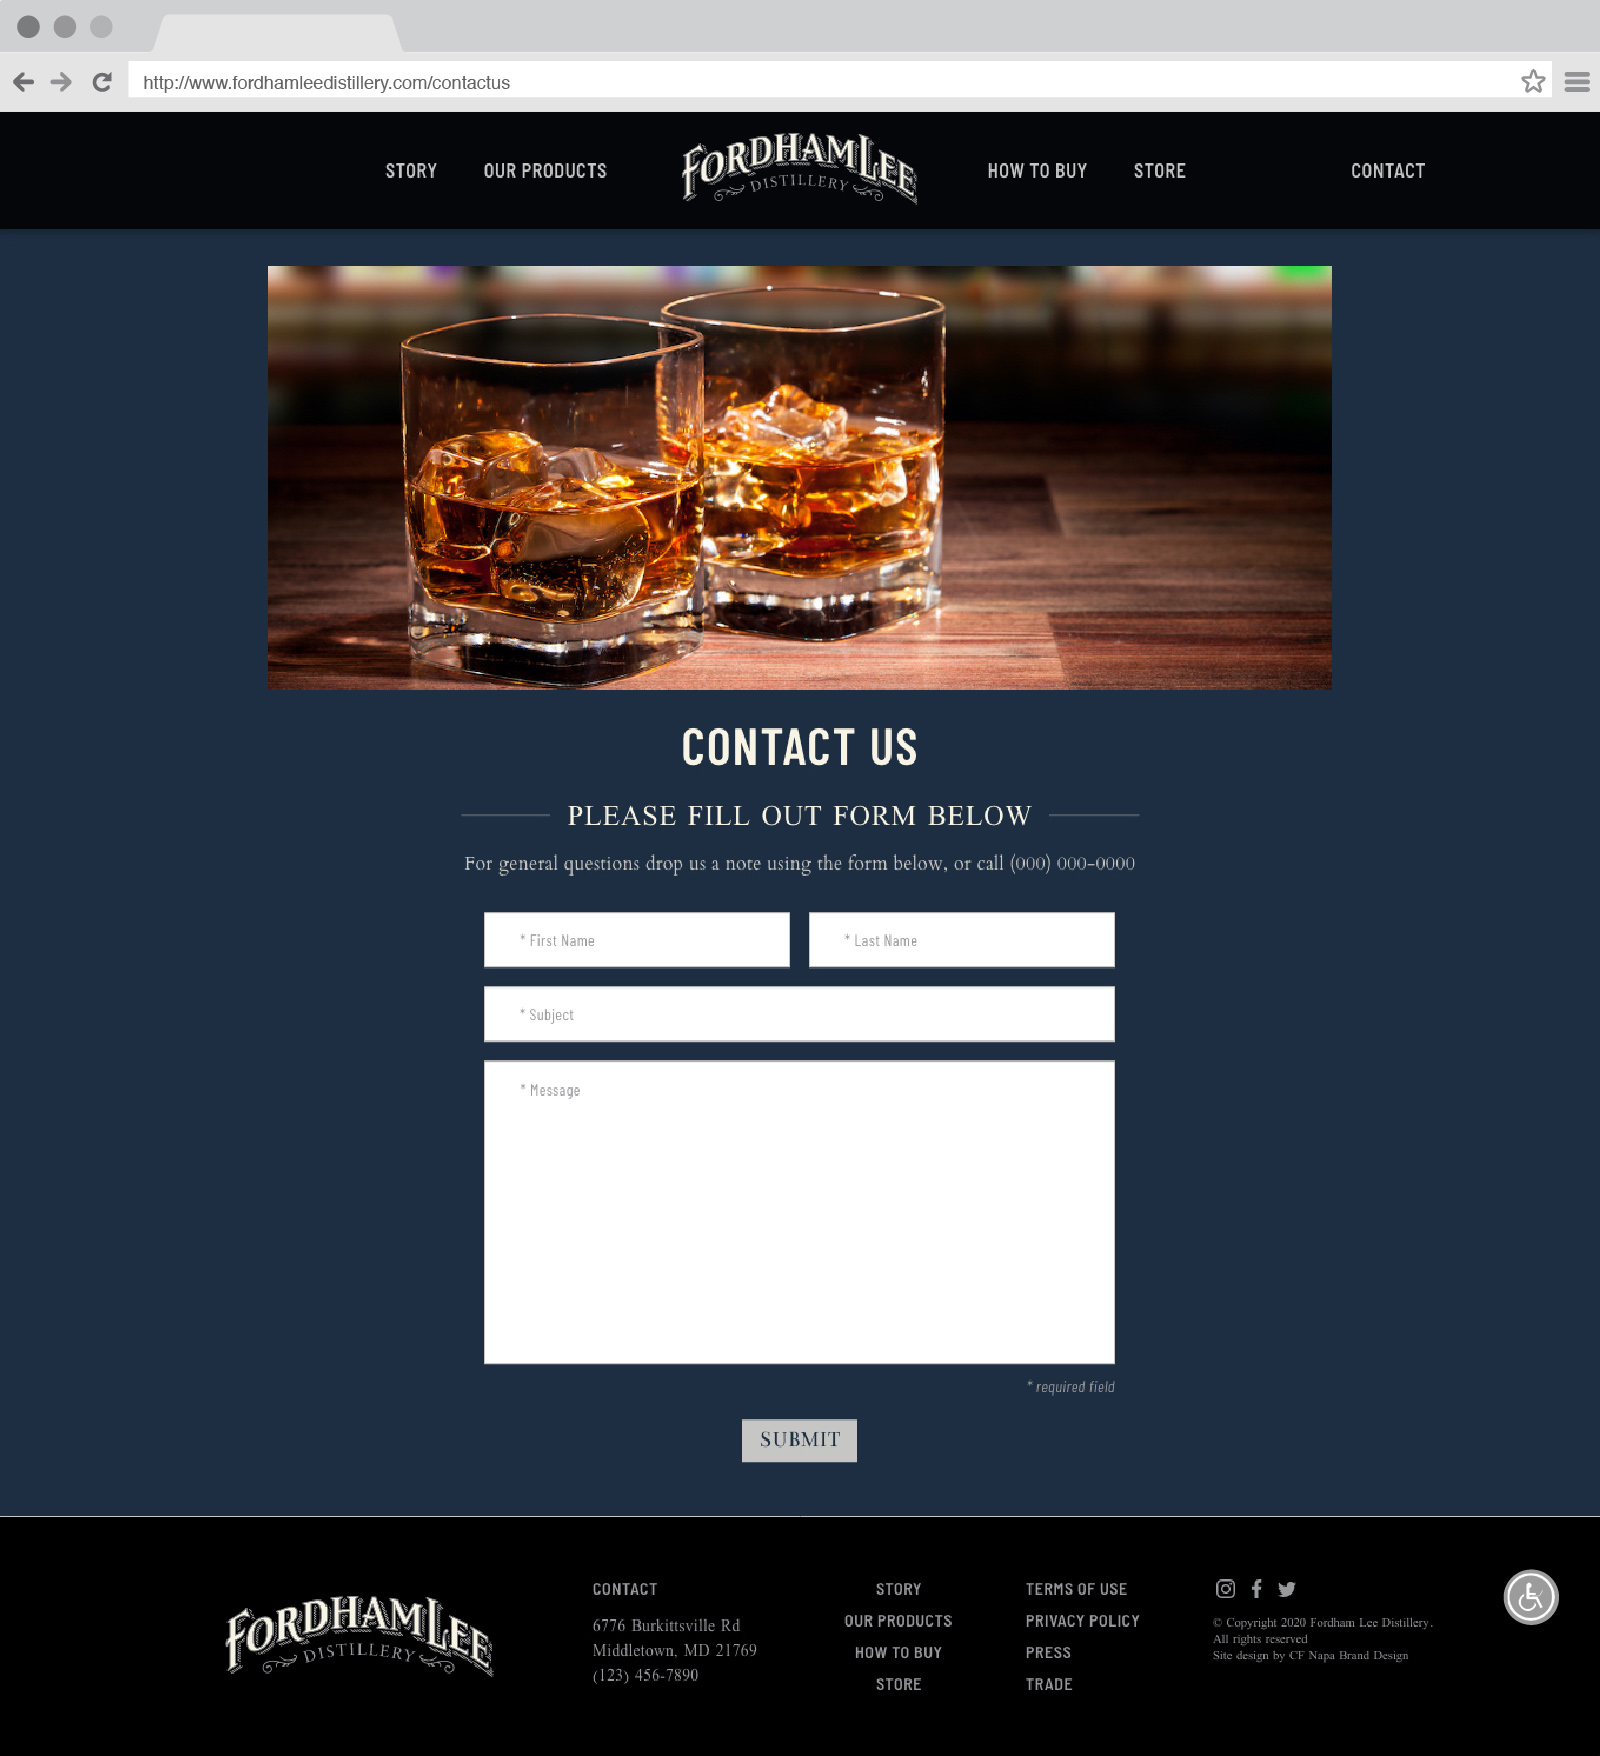 Fordham Lee Distillery Contact Us Page Website Design